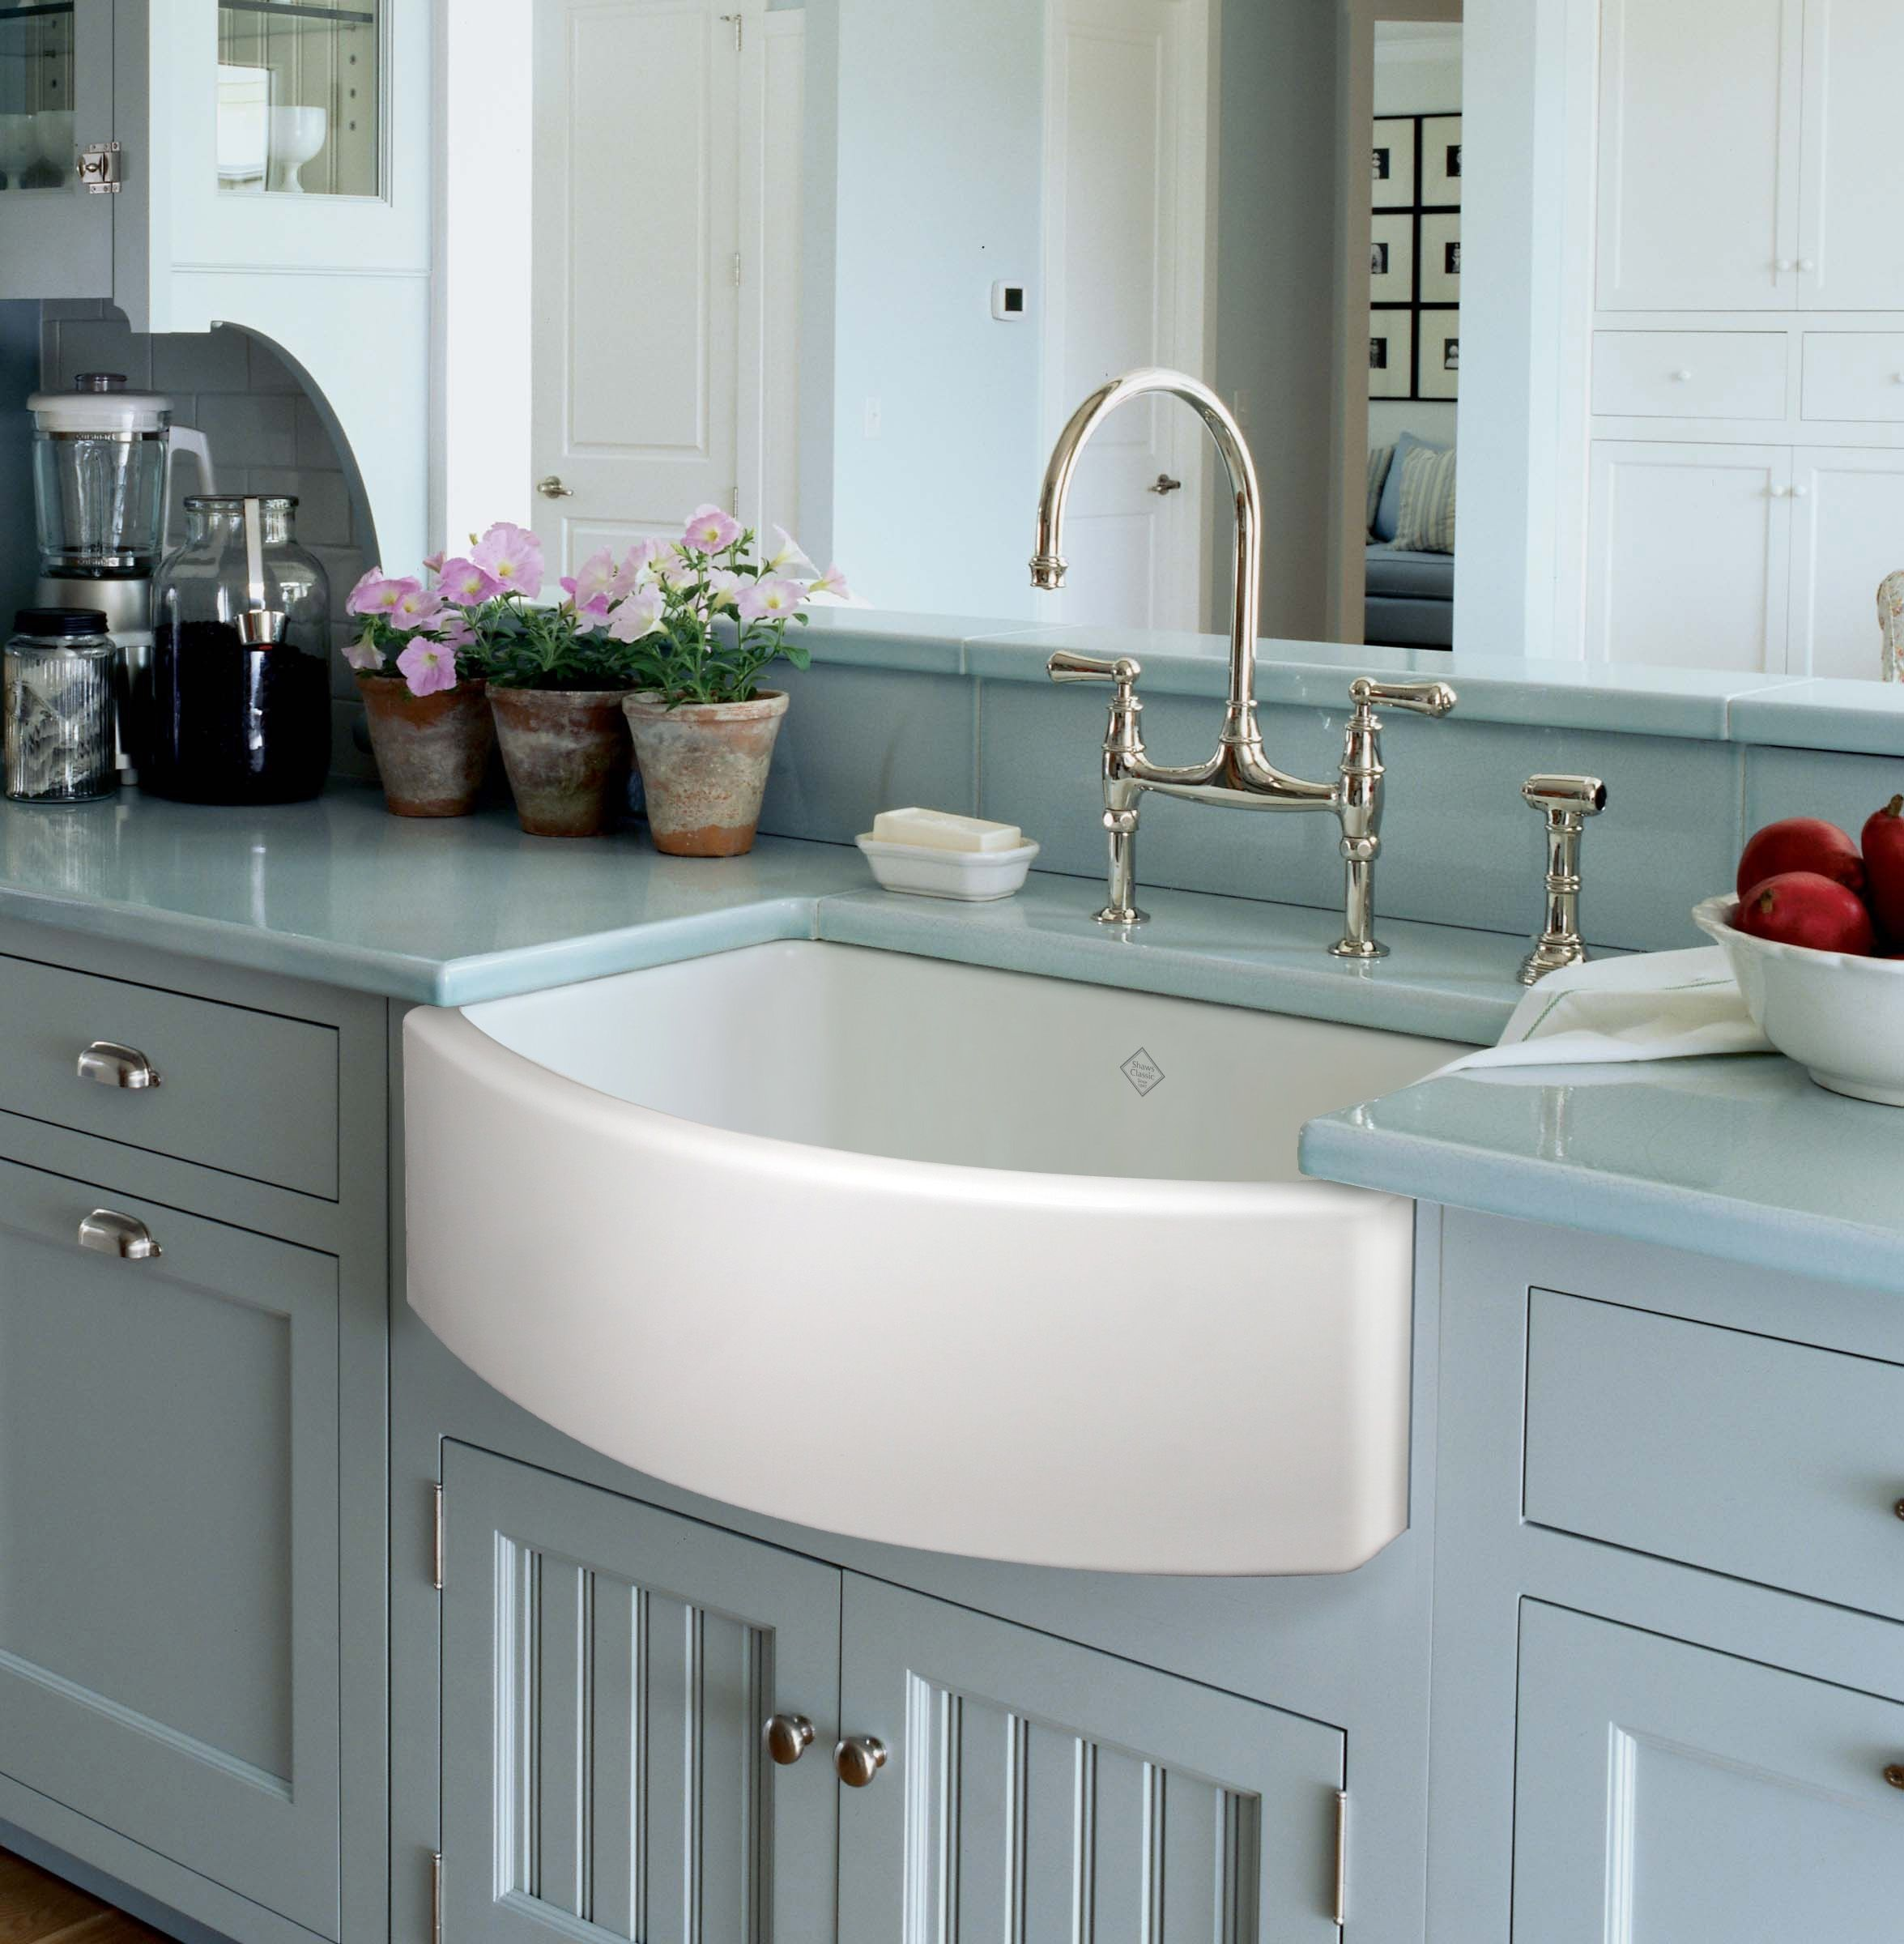 Rohl Farmhouse Sink Rc3017 (With images) Rustic kitchen